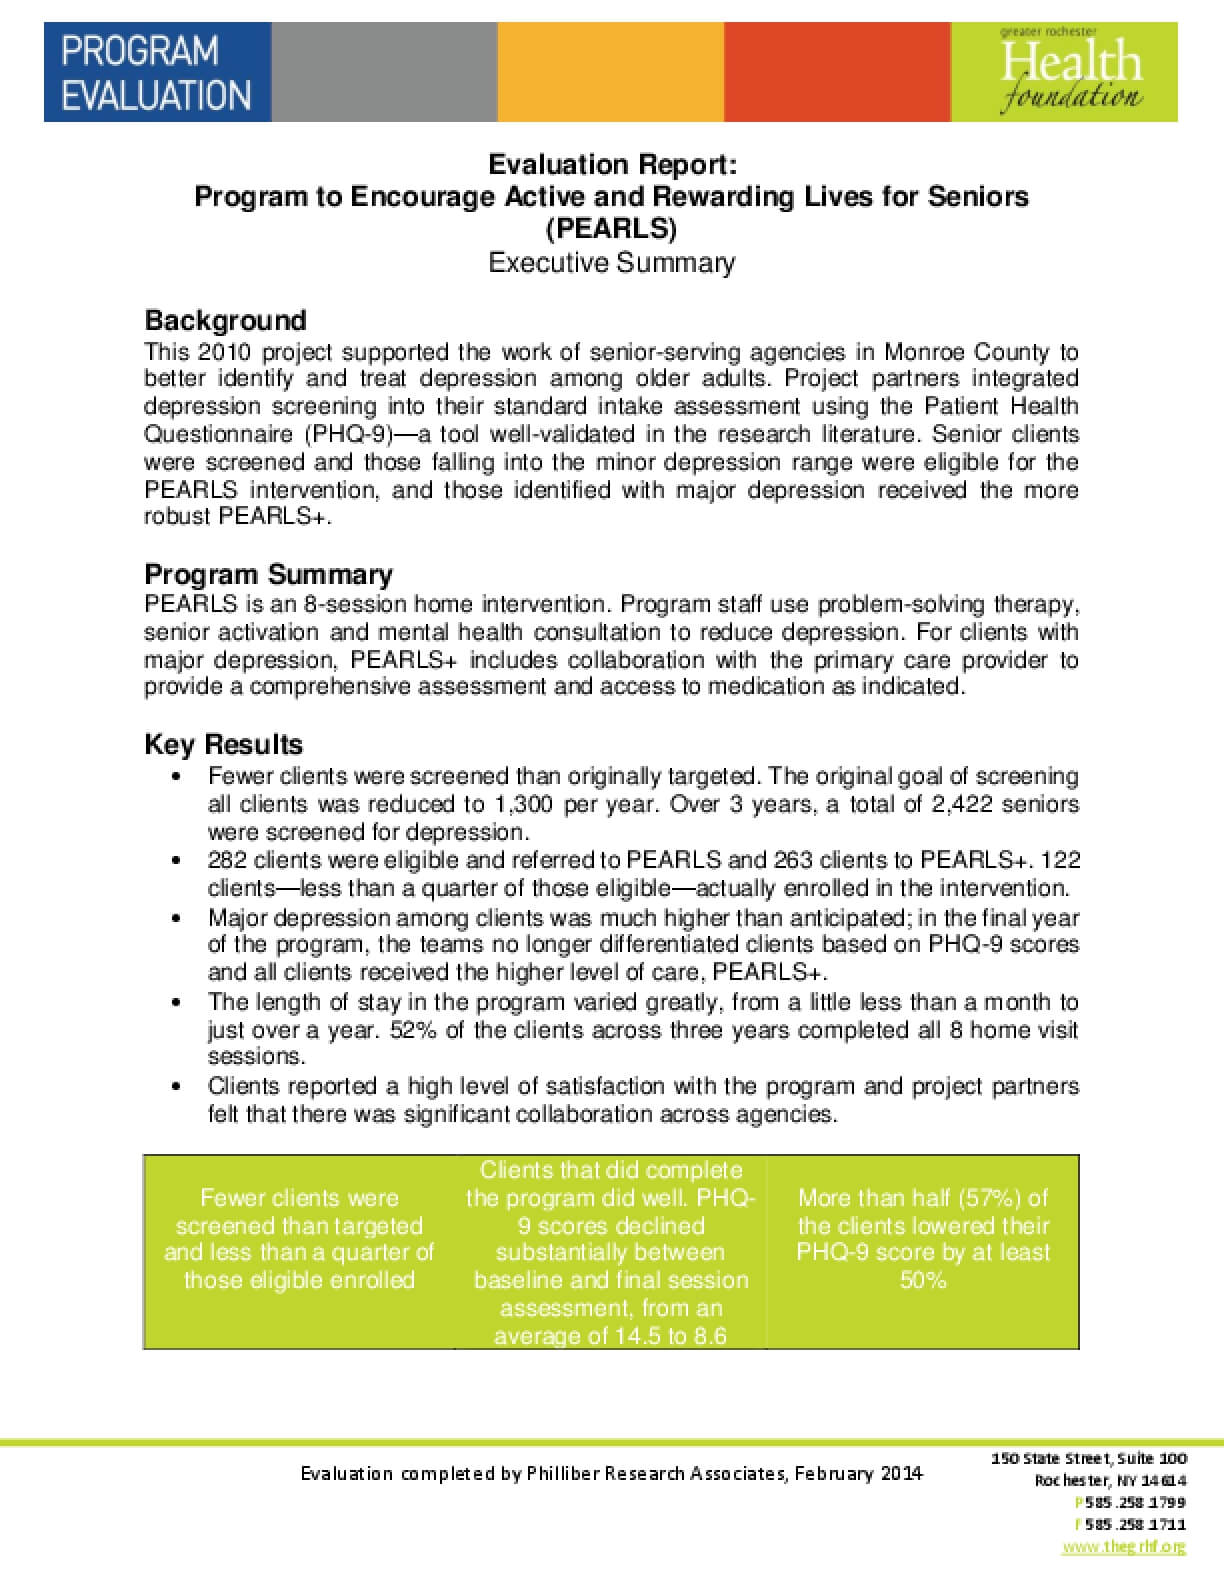 Evaluation Report: Program to Encourage Active and Rewarding Lives for Seniors (PEARLS) Executive Summary